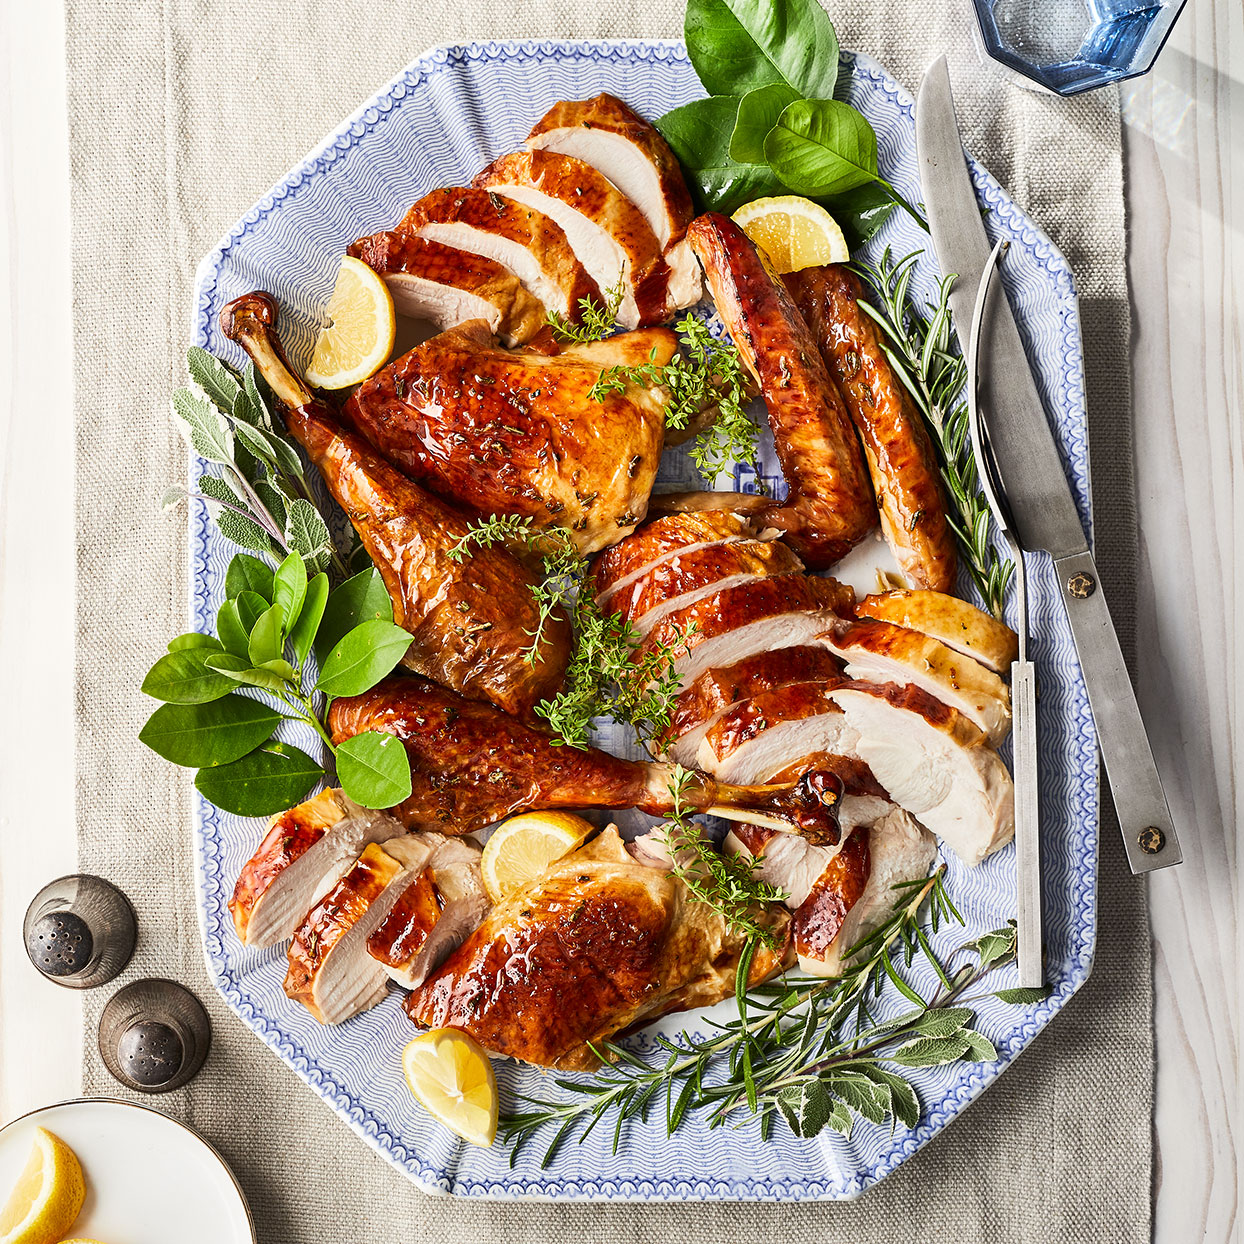 A rub made of herbs, lemon zest, and garlic infuses every bite of this juicy bird. It's accompanied by a rich homemade gravy made from pan drippings and a touch of cream.